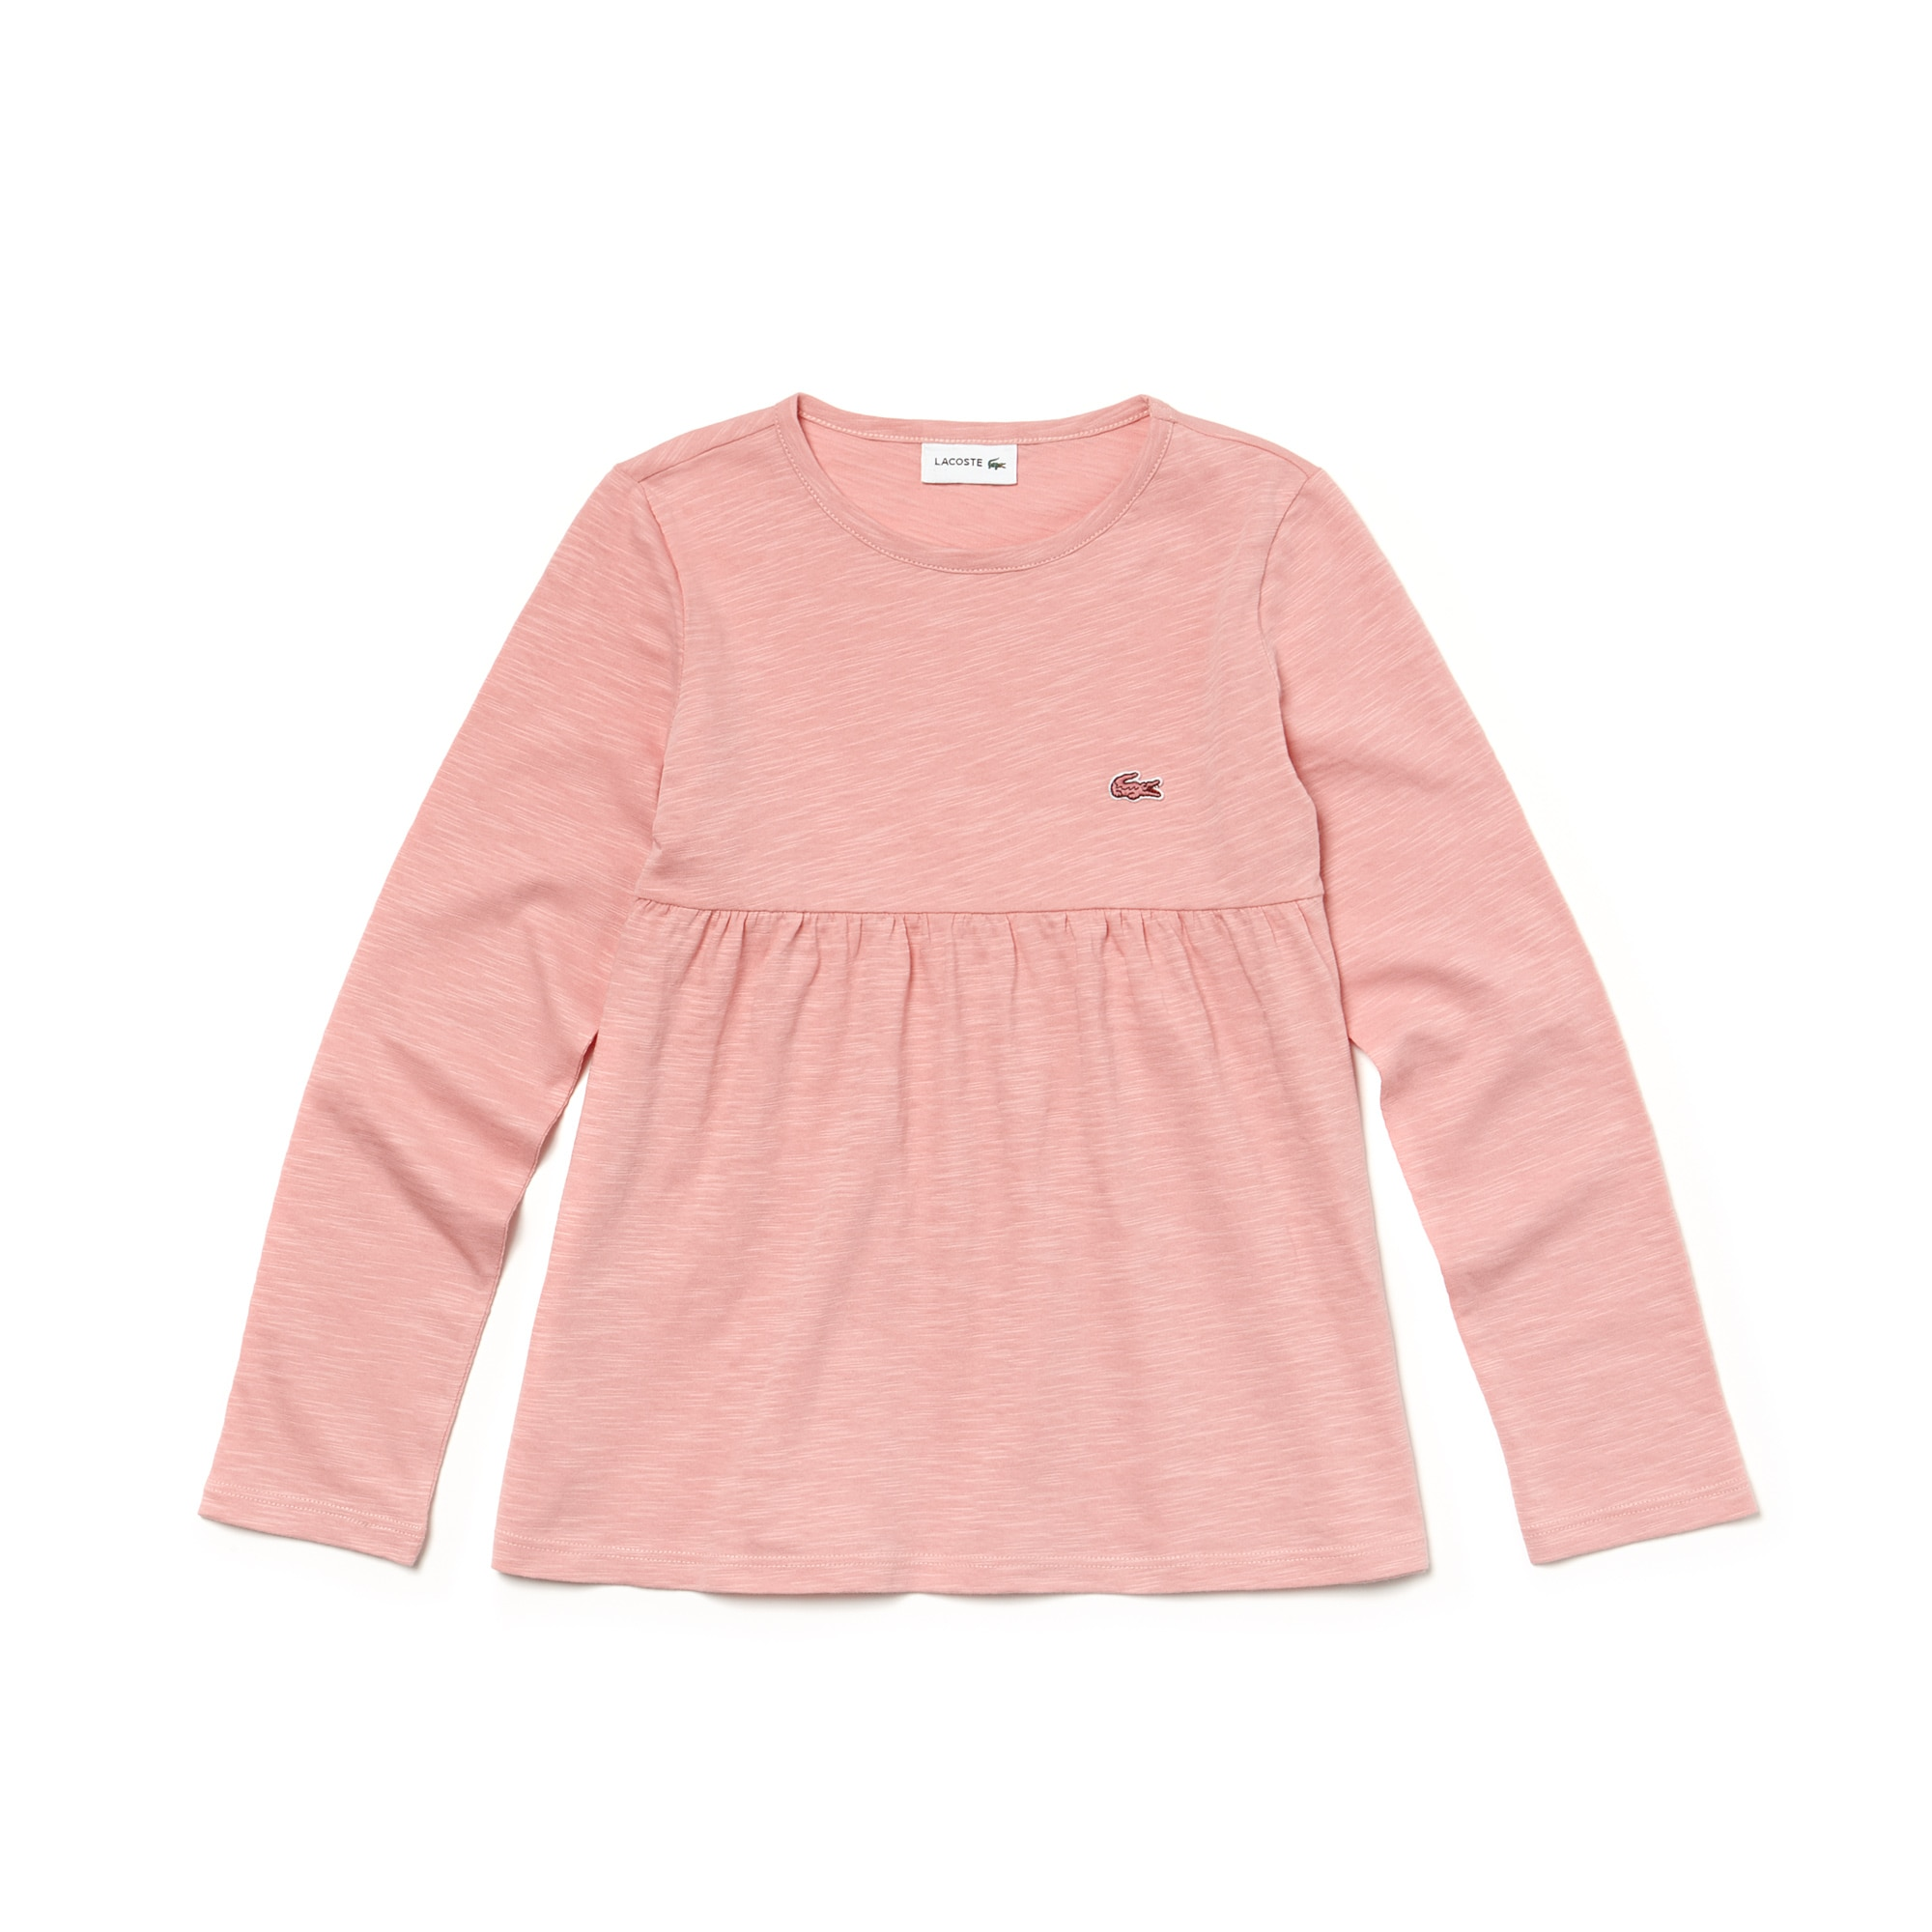 Girls' Crew Neck Cotton Jersey T-shirt